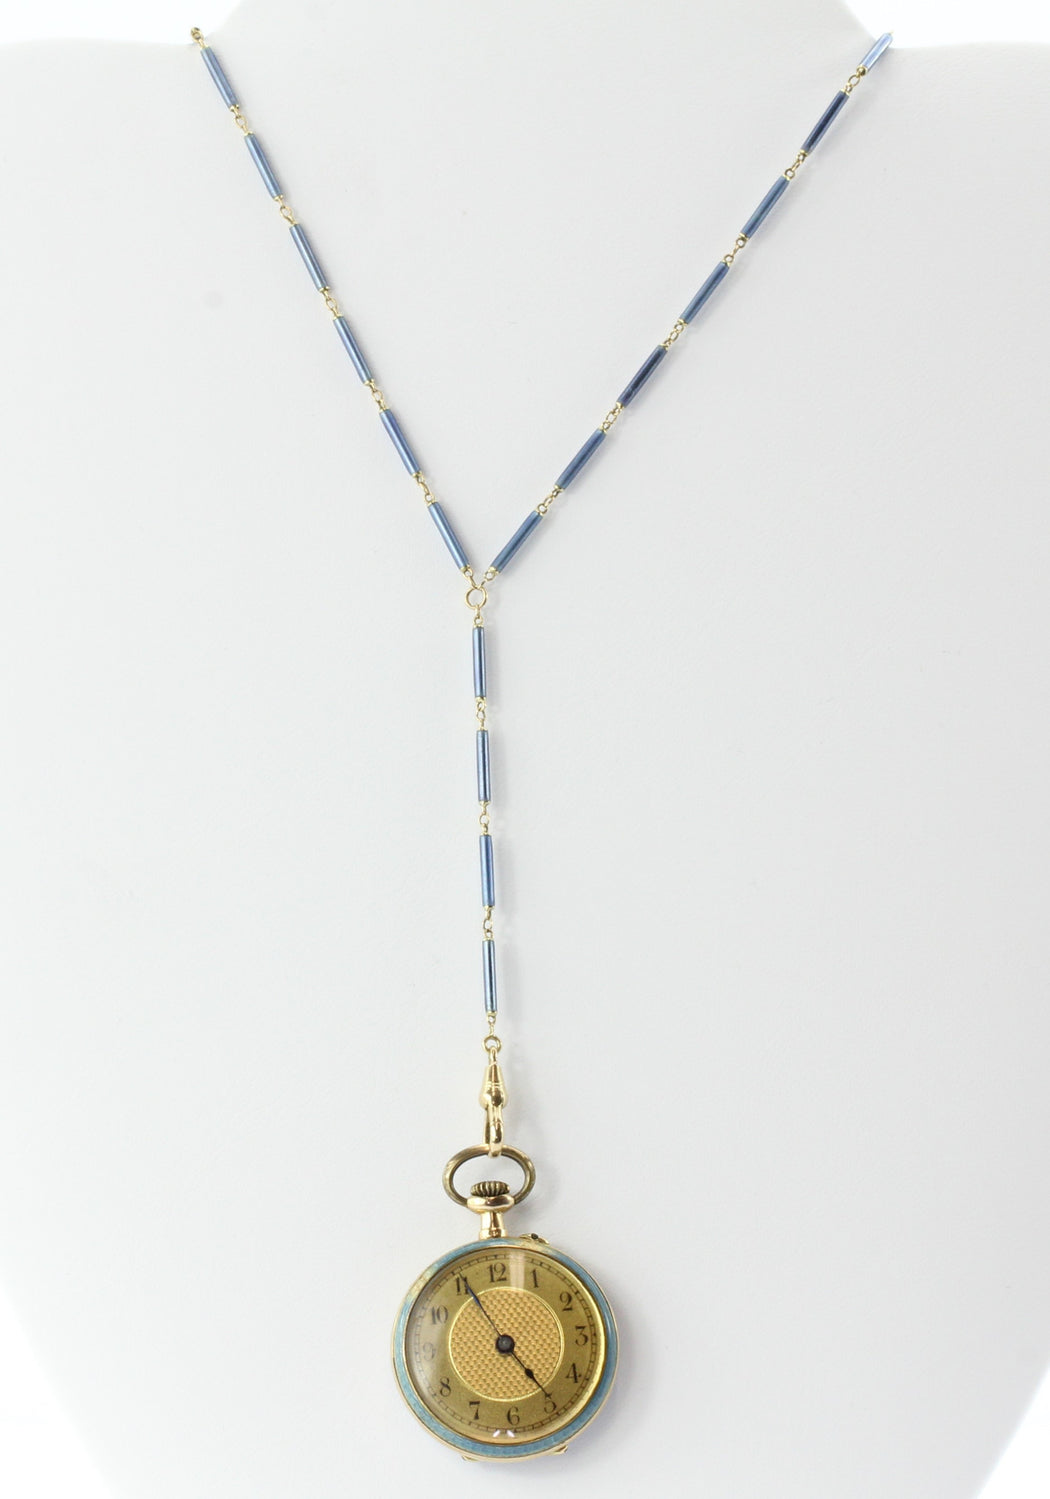 Late 19th Century Swiss Avance Retard 14k Yellow Gold Swiss Blue Enamel Watch and Lariat - Queen May